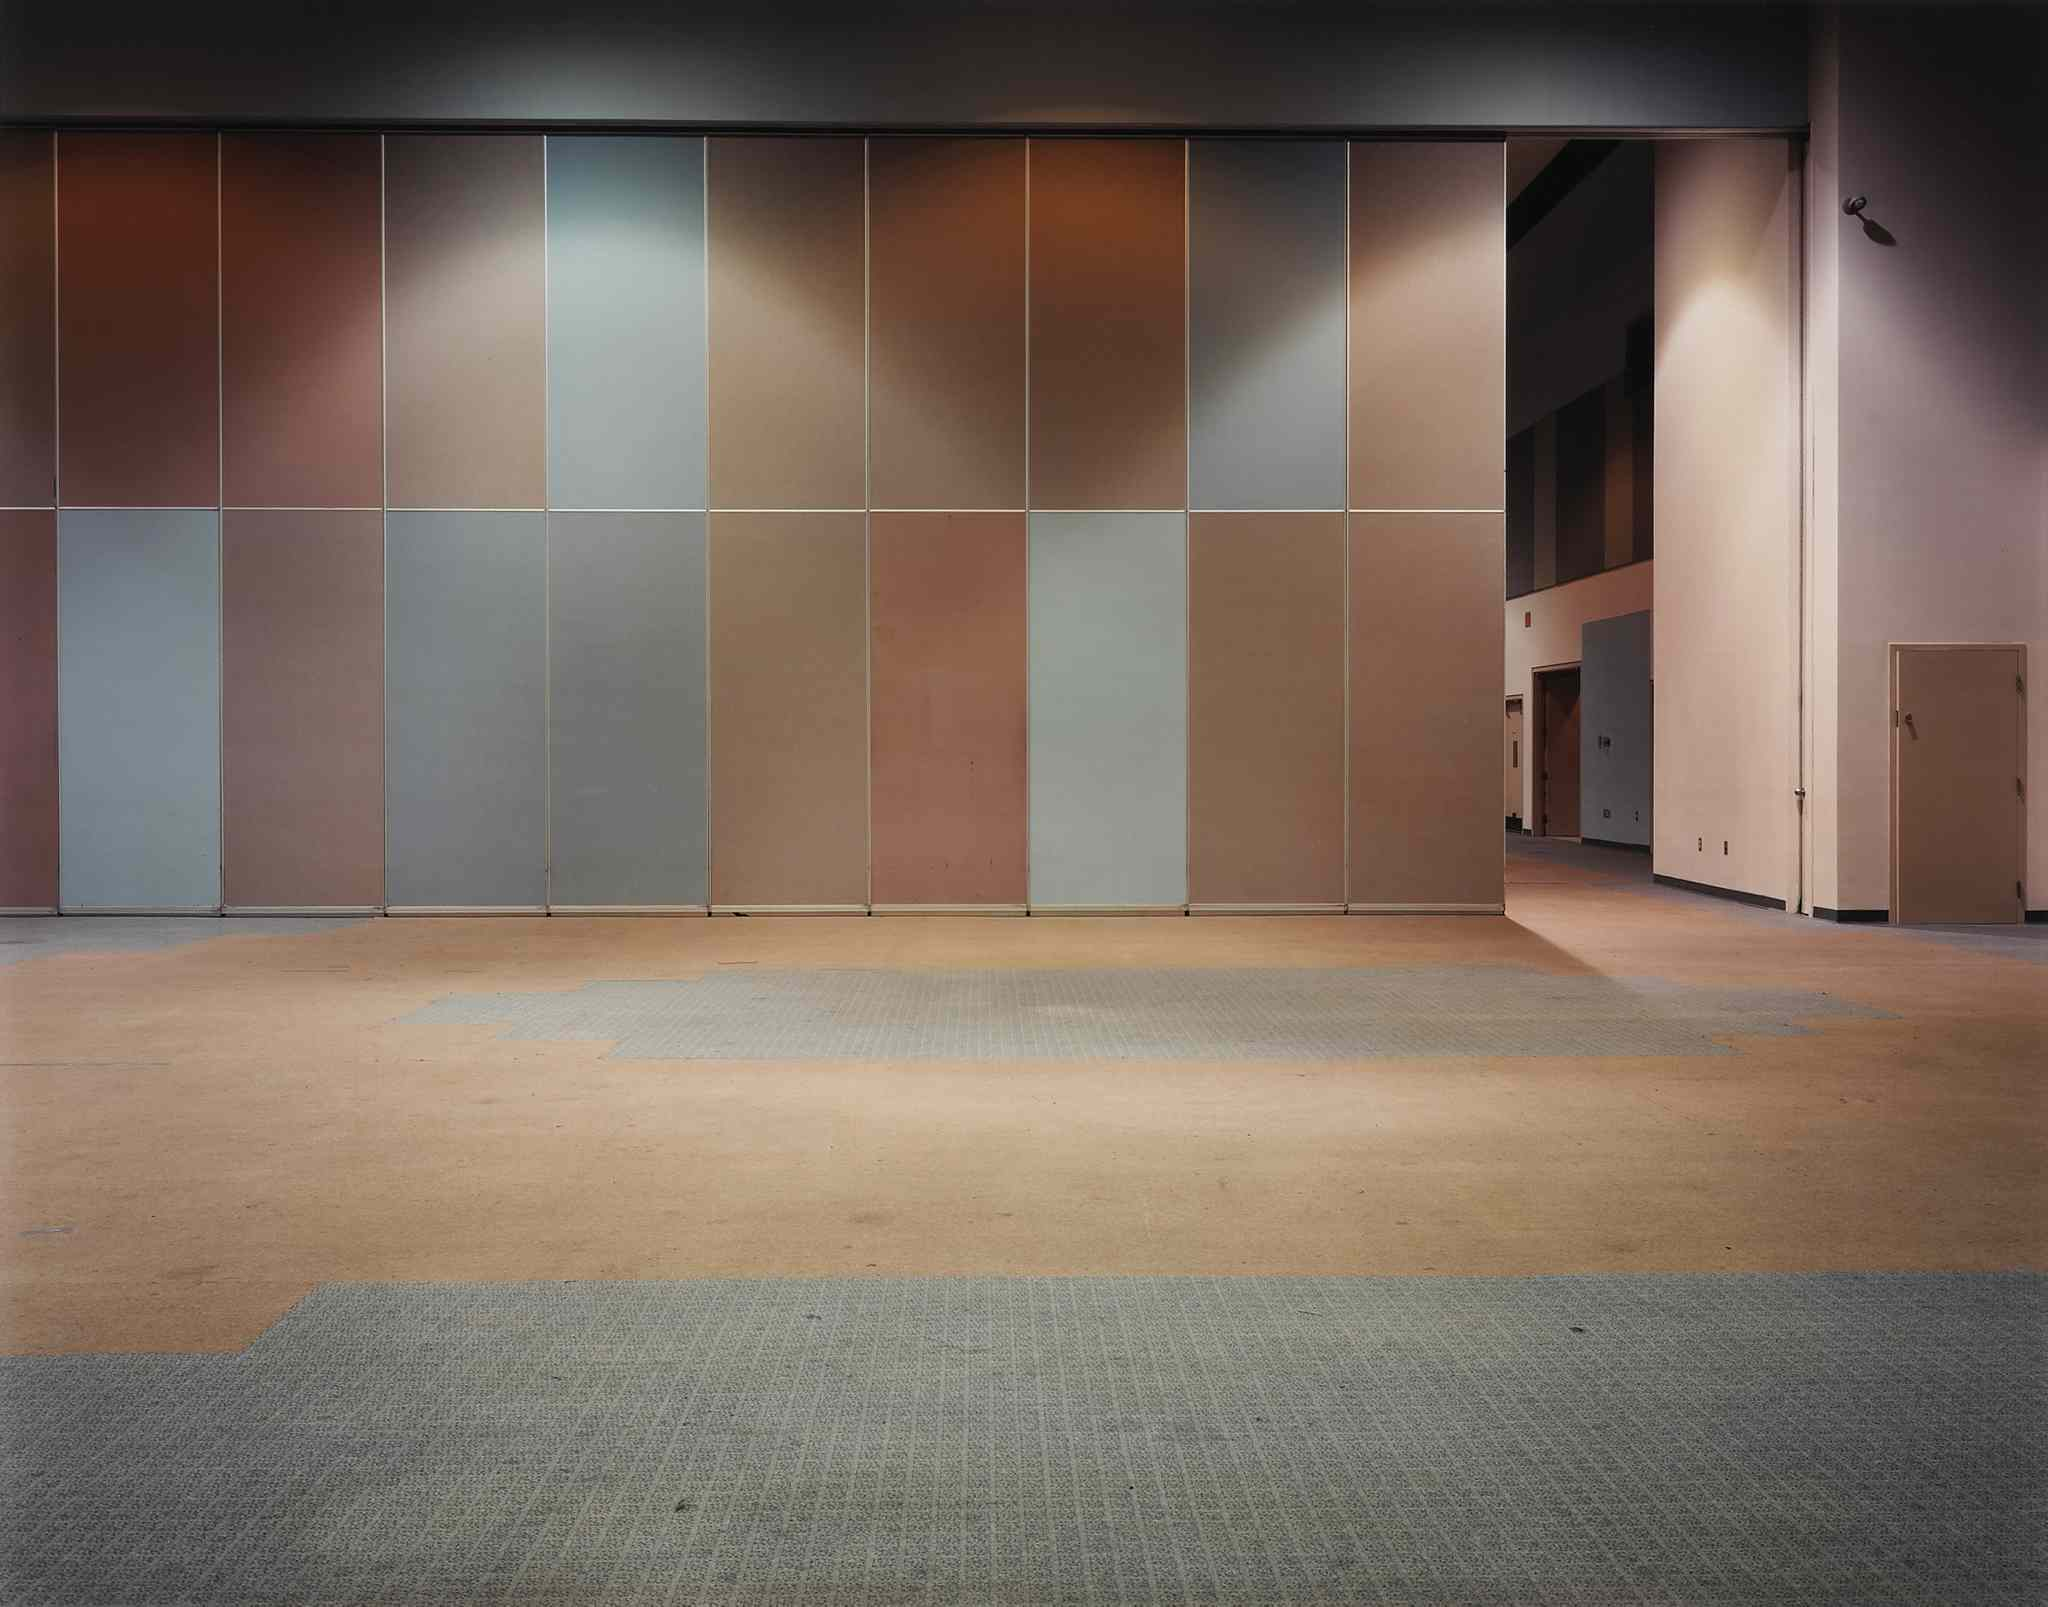 Lynne Cohen, Hall, 1999, dye coupler print, 80.7 x 102 cm. National Gallery of Canada, Ottawa